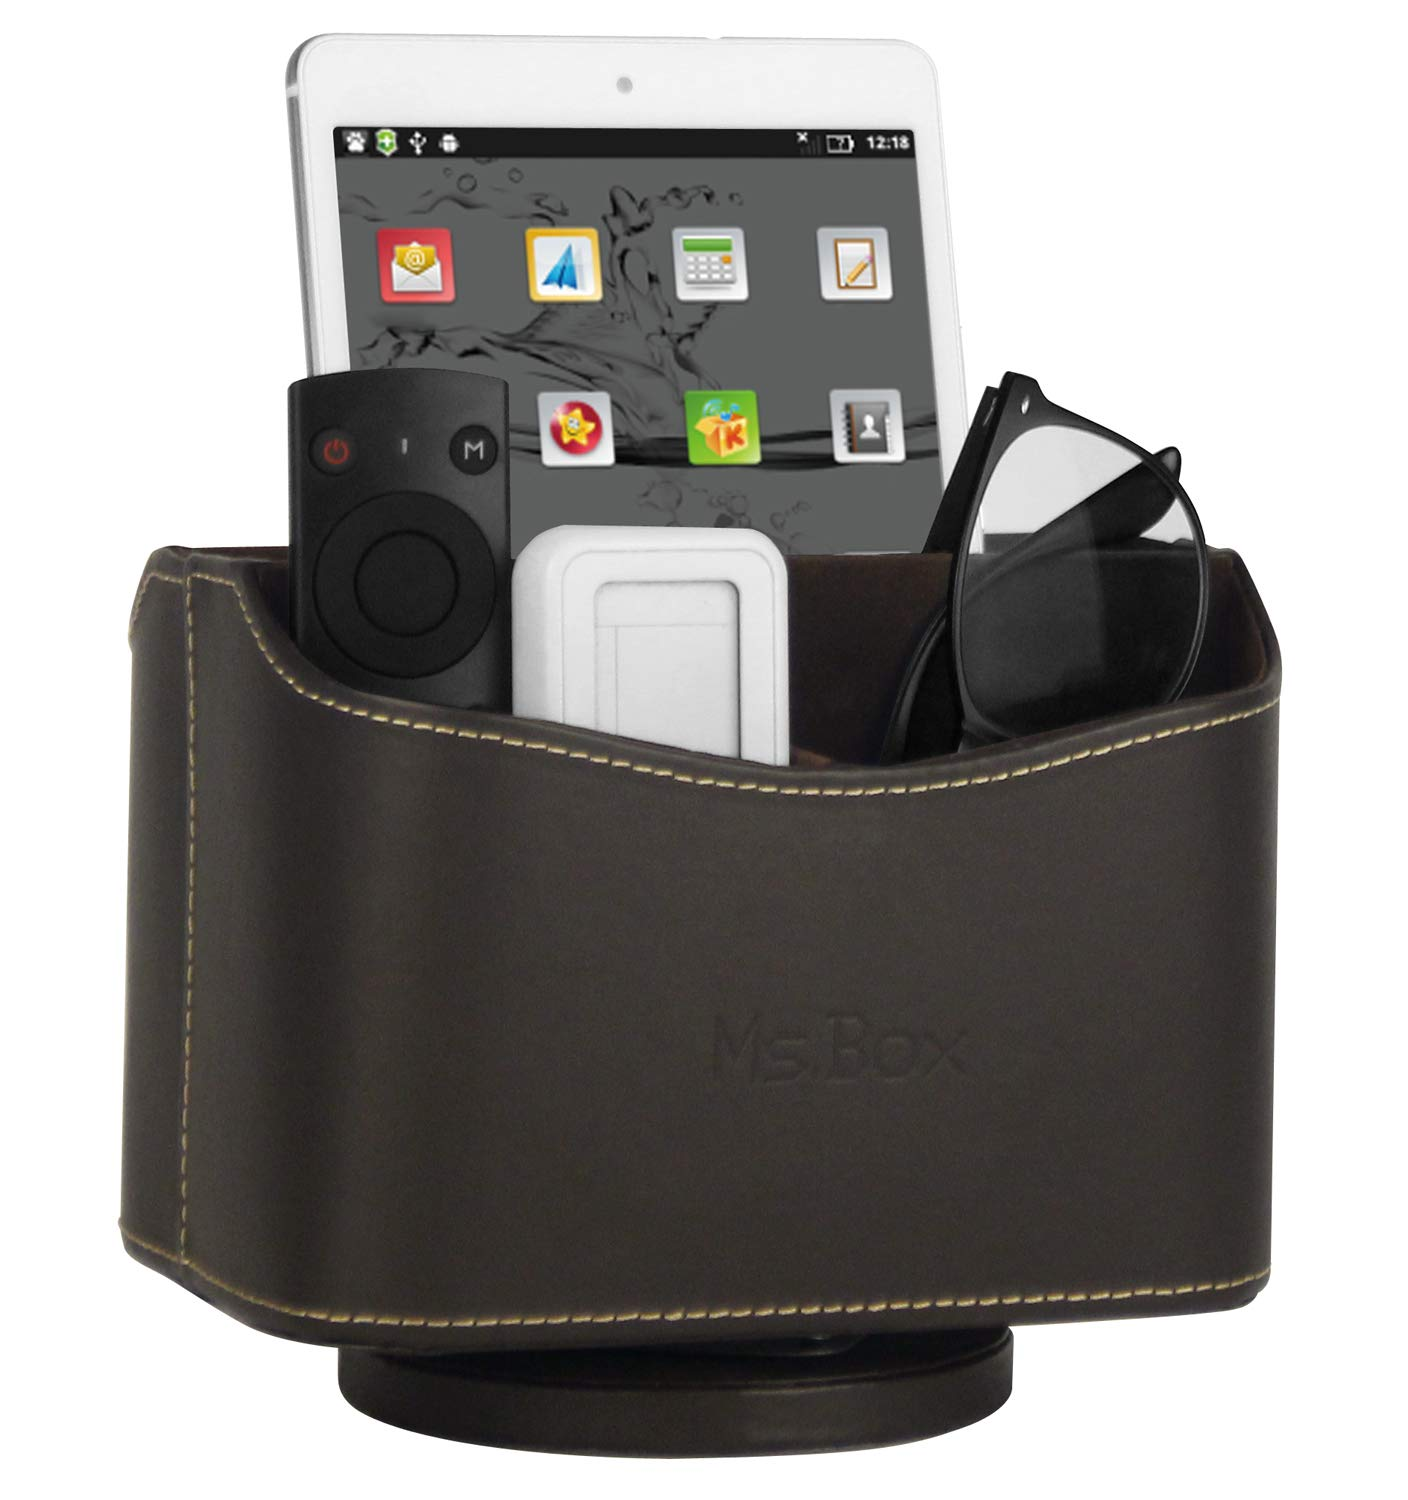 Ms.Box Spinning Remote Caddy, Media Storage Organizer, Remote Control Holder Organizer, Remote Caddy, Brown PU Leather, 7.3X 5.5 x 6 inches